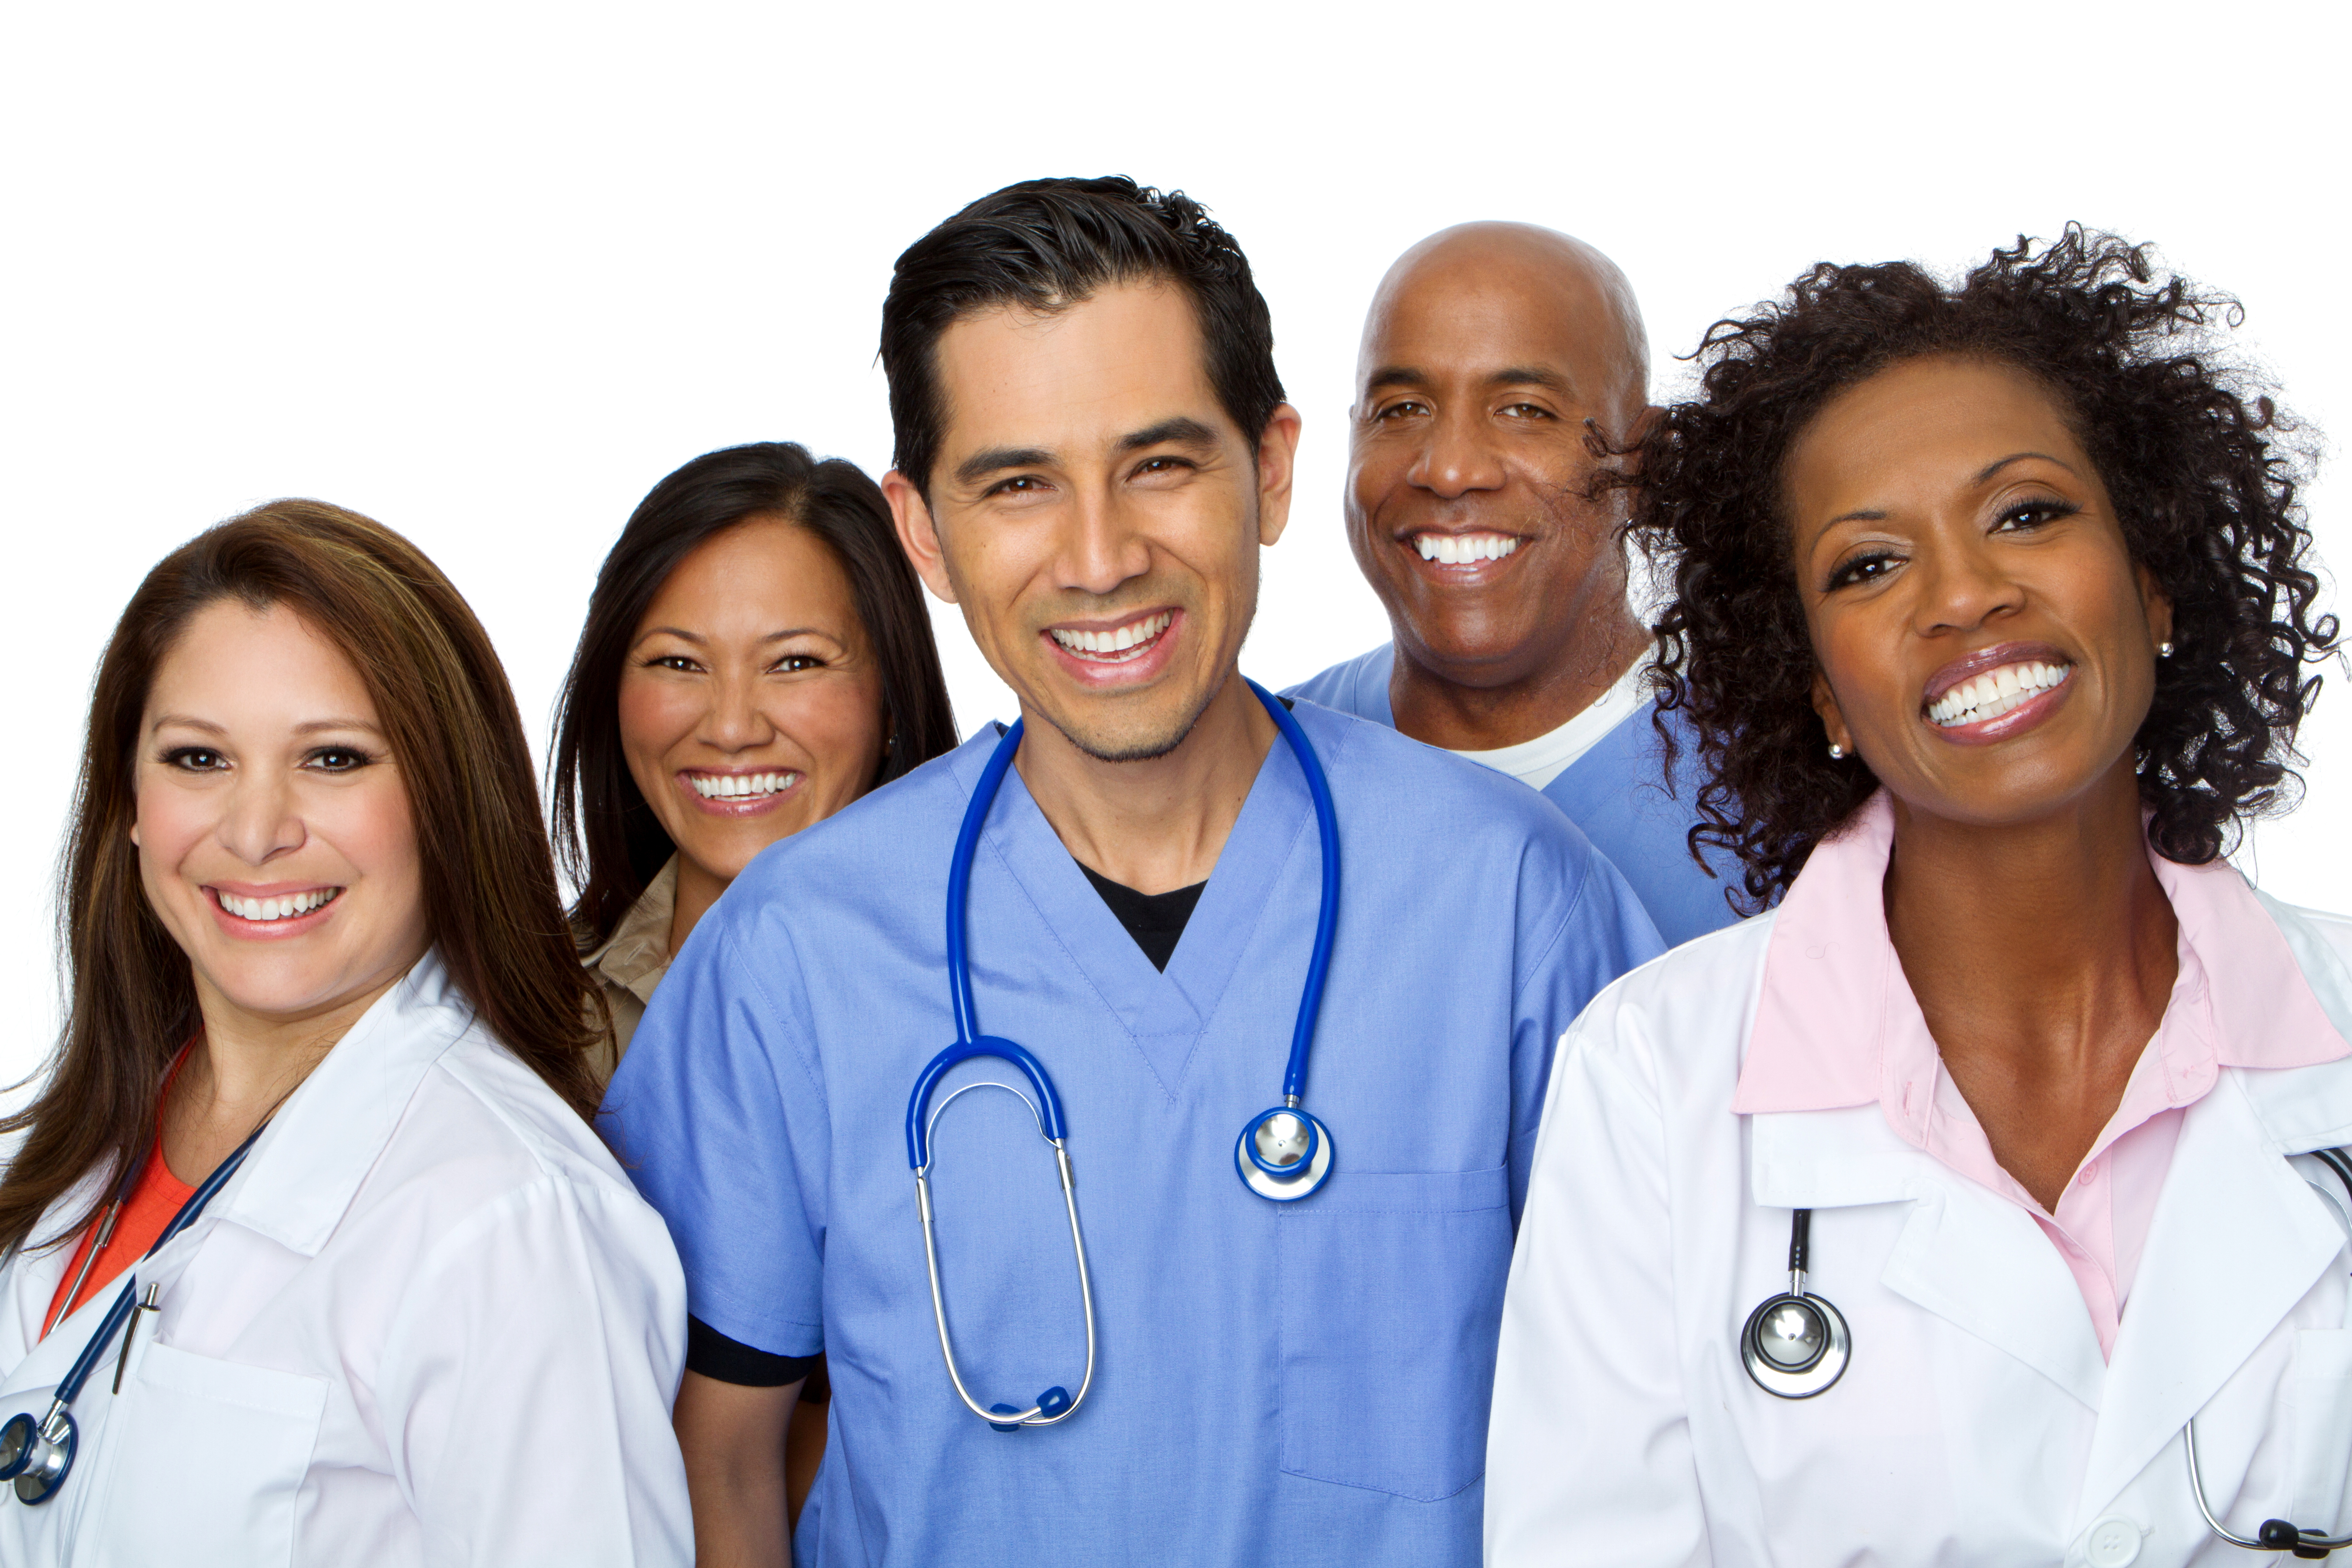 A group of health care providers